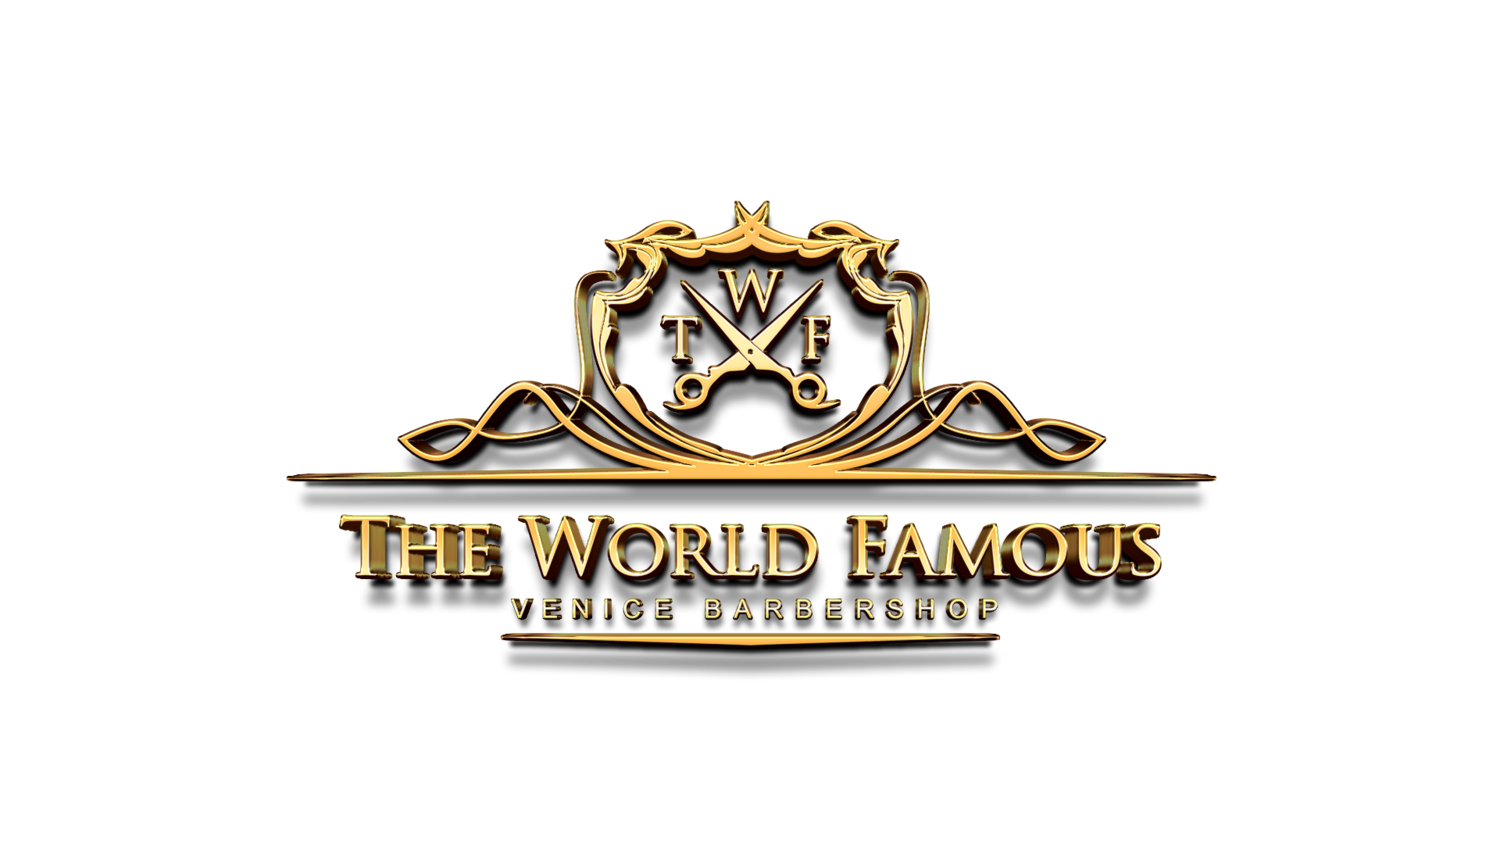 The World Famous Venice Barber Shop